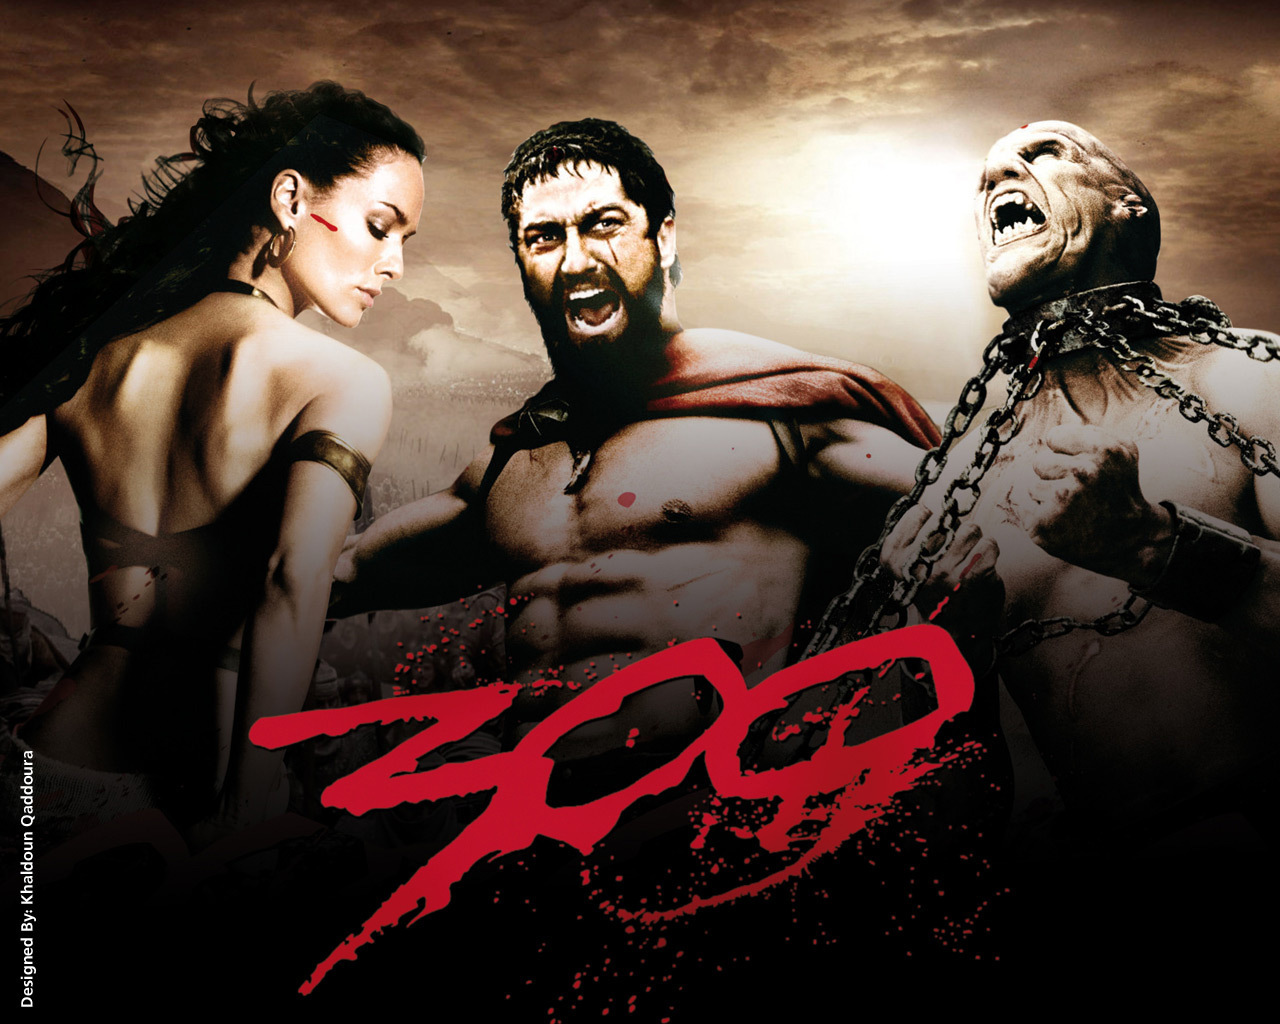 300 rise of an empire full movie free